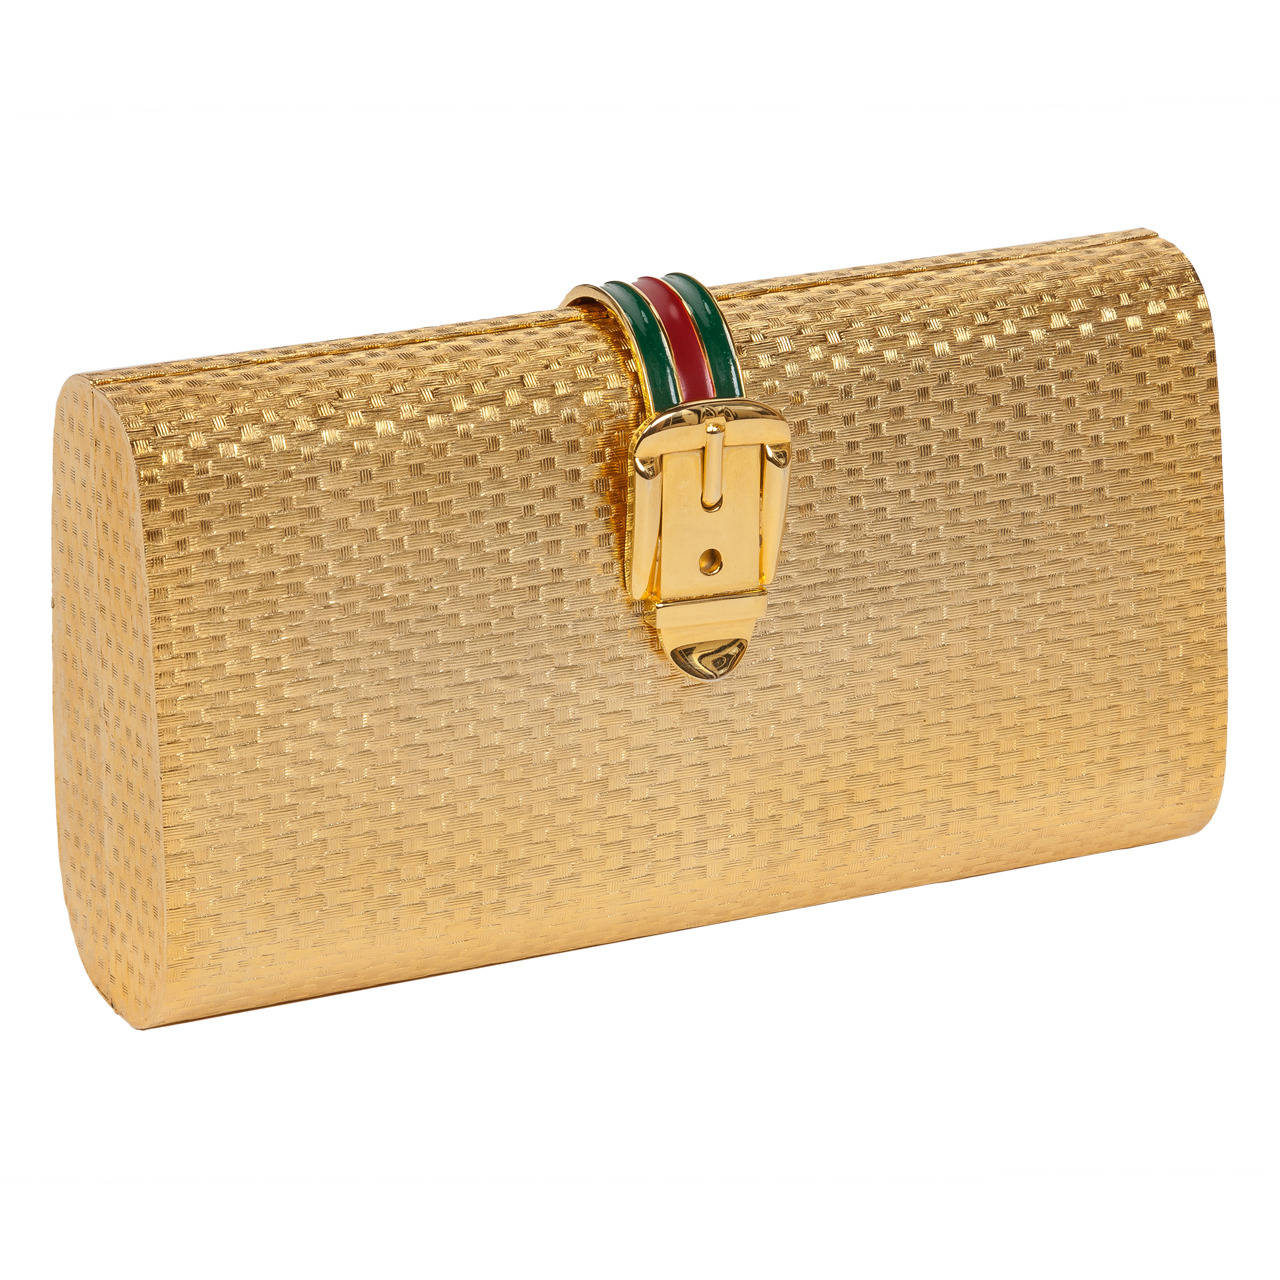 Iconic Gucci Gold Metal Minaudière Clutch w/Enameled Buckle Closure ca.1970s For Sale